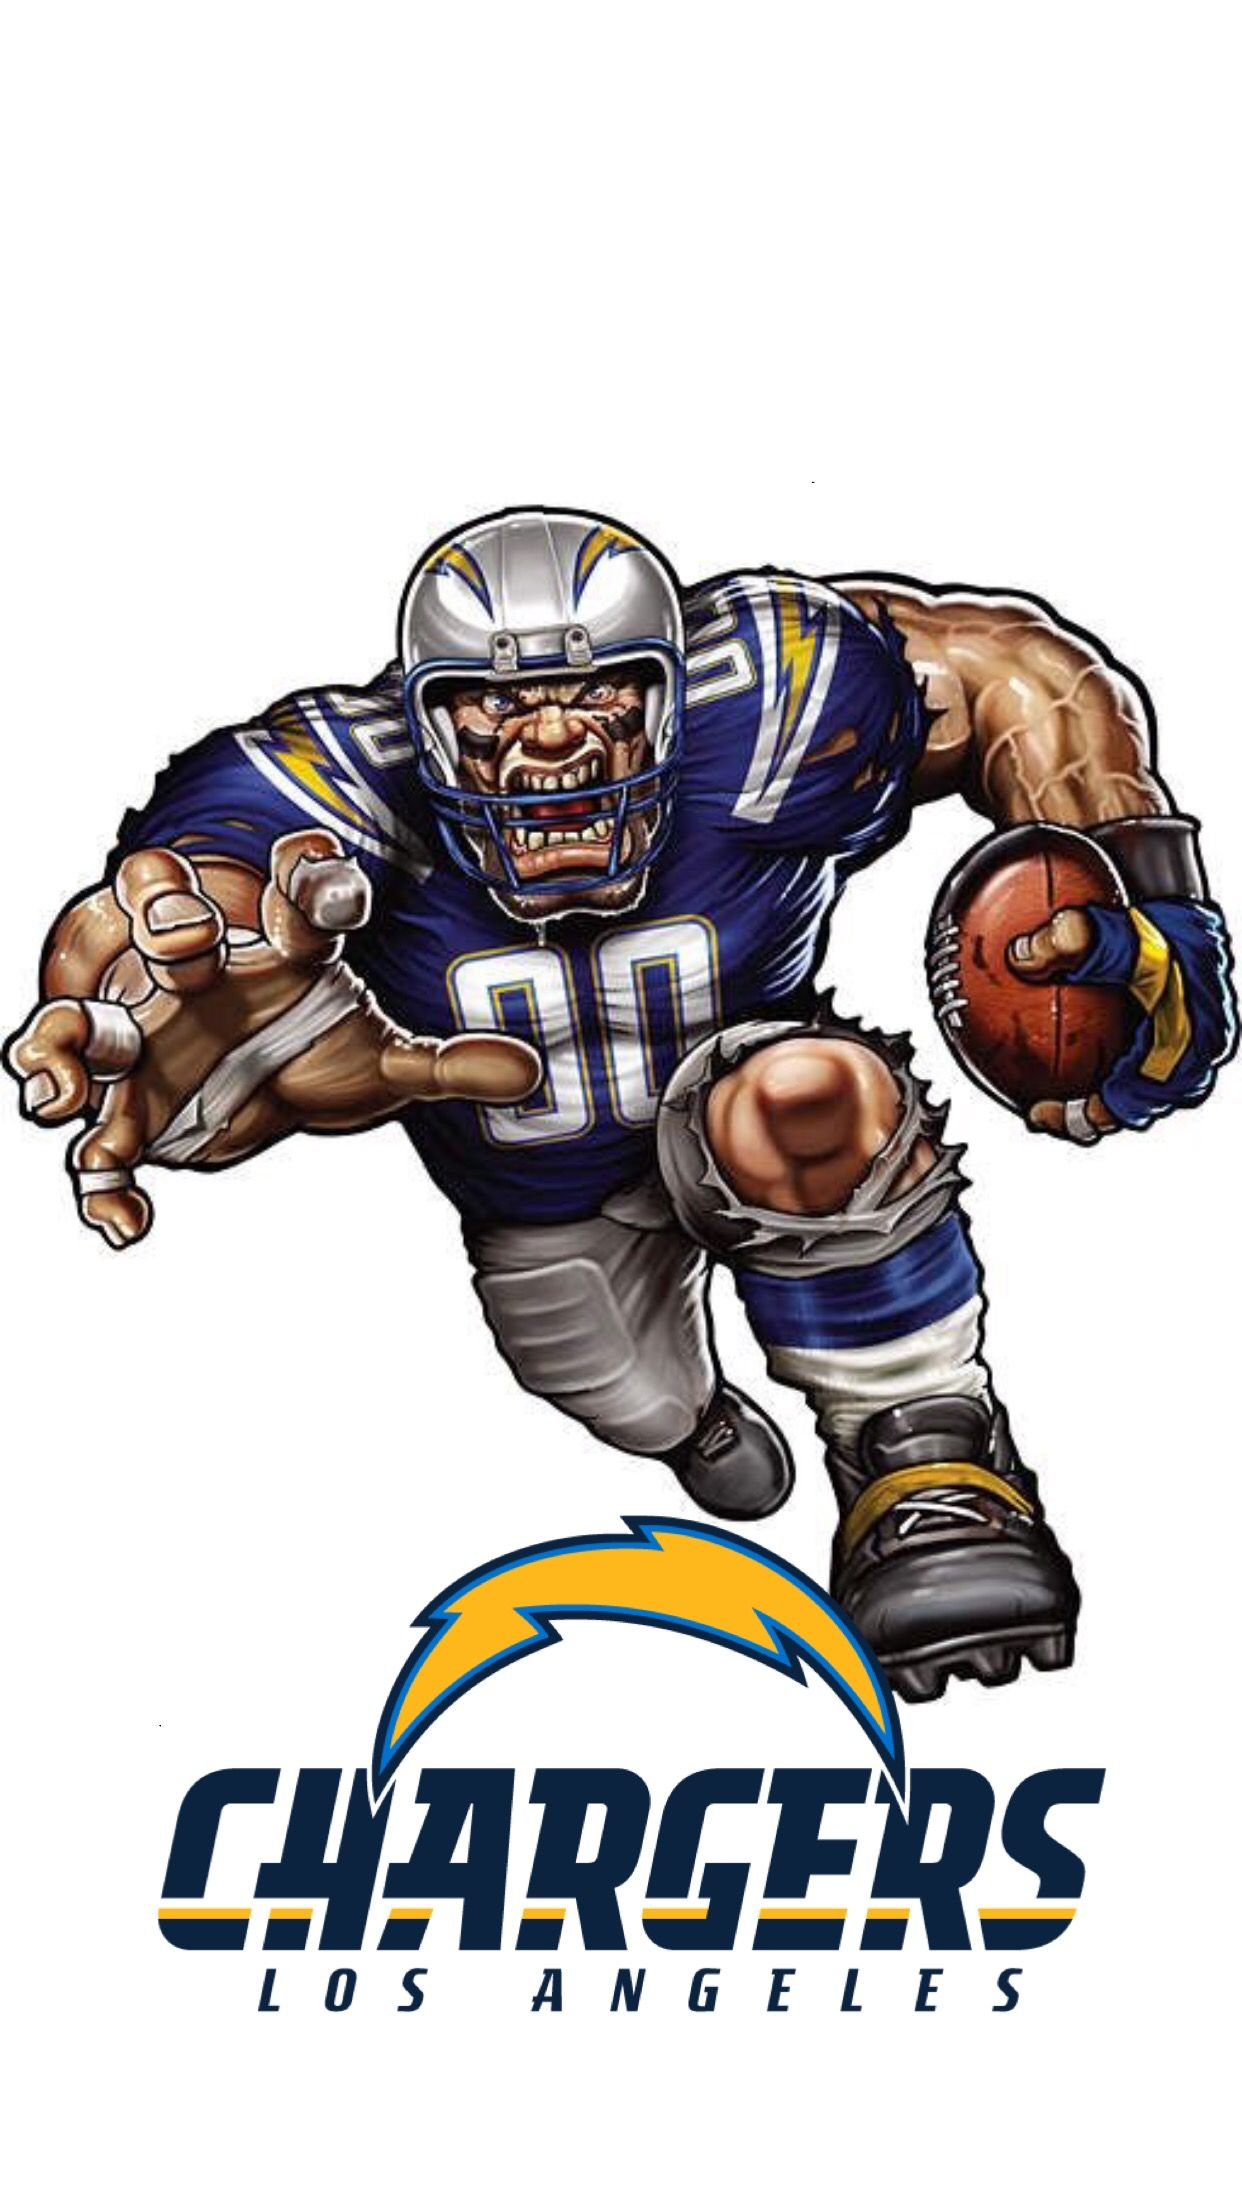 Pin By Laura Antwan On Los Angeles Chargers Nfl Football Art Chargers Football Nfl Football Helmets